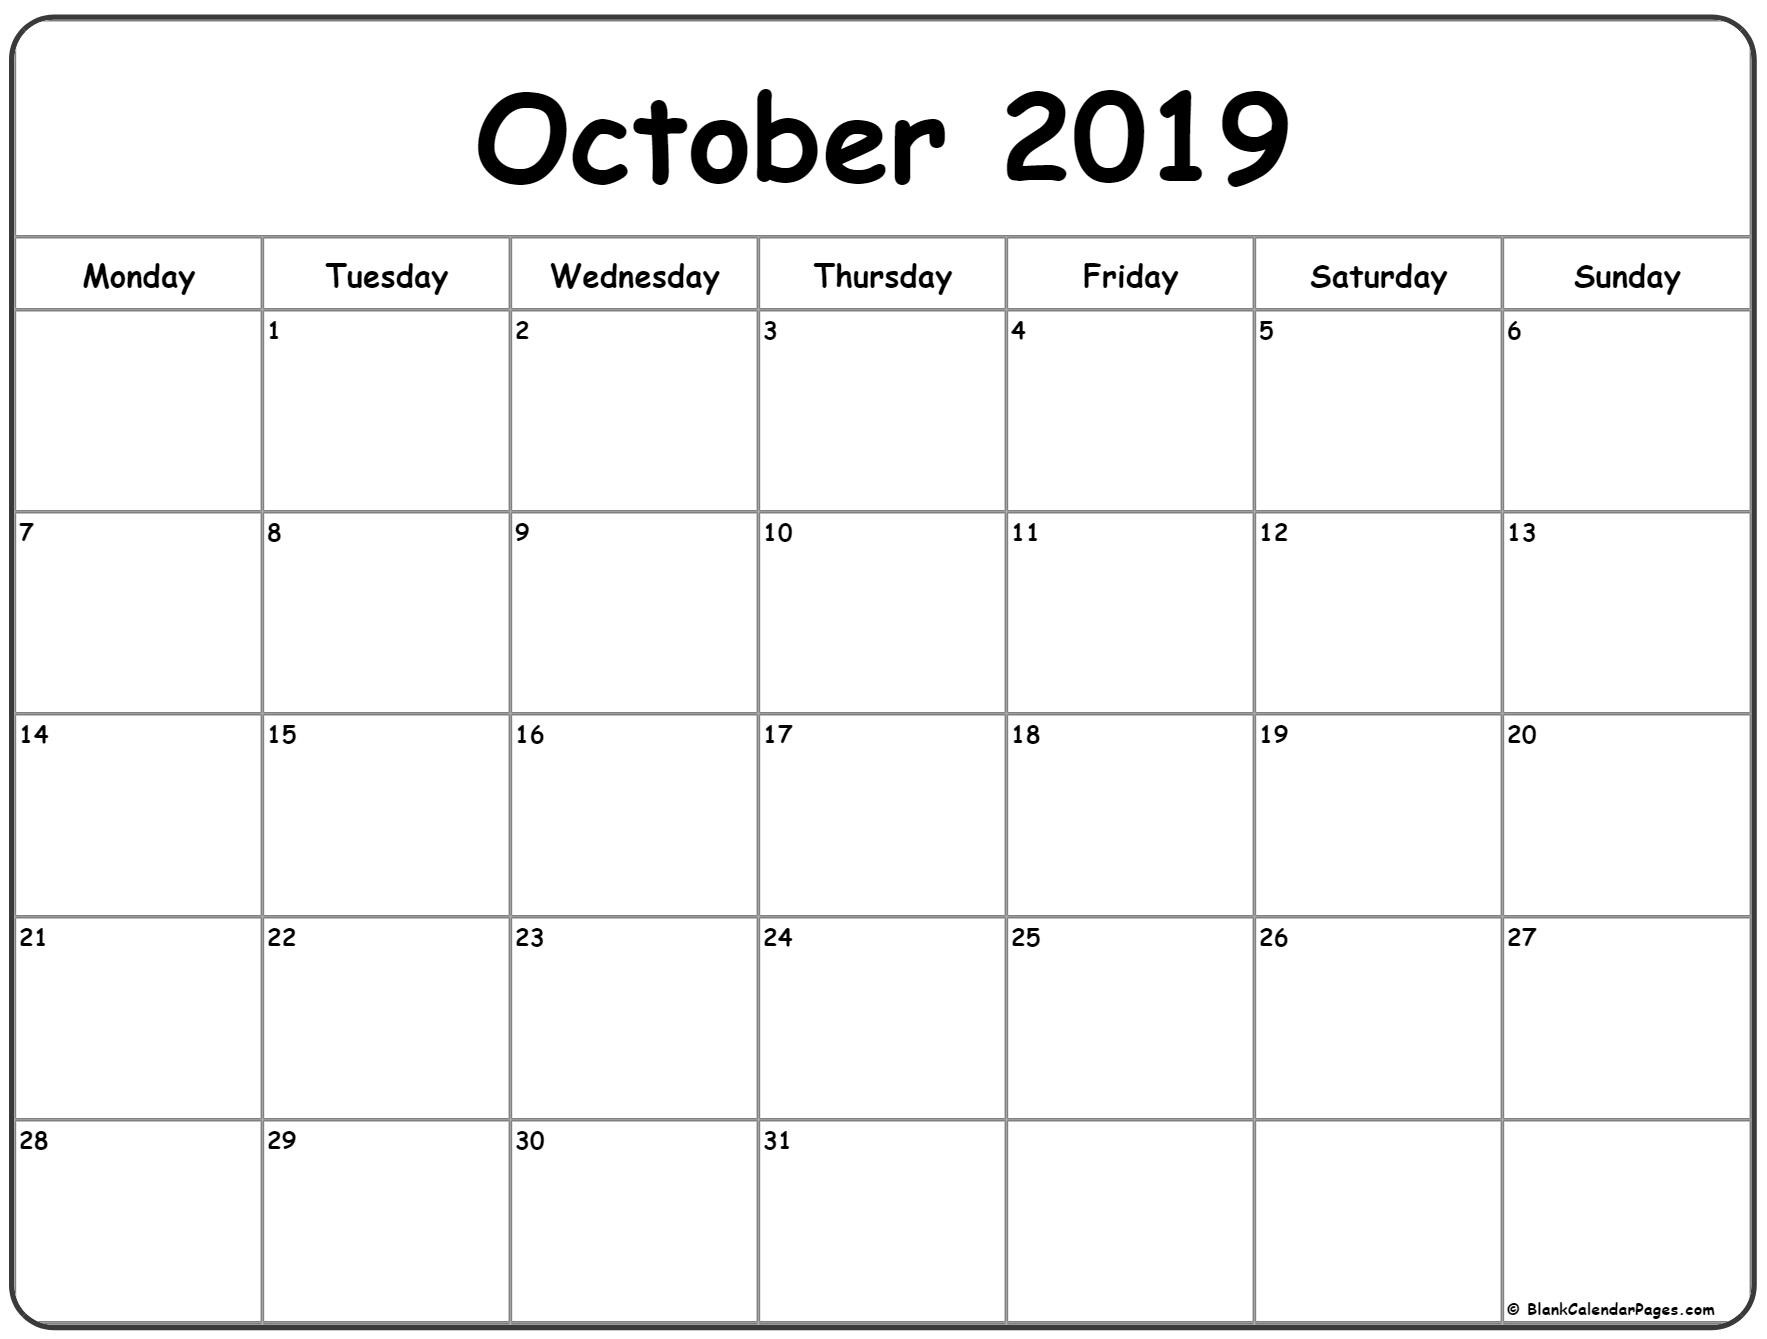 October 2019 Monday Calendar | Monday To Sunday-Blank Monthly Planner Starts On Monday